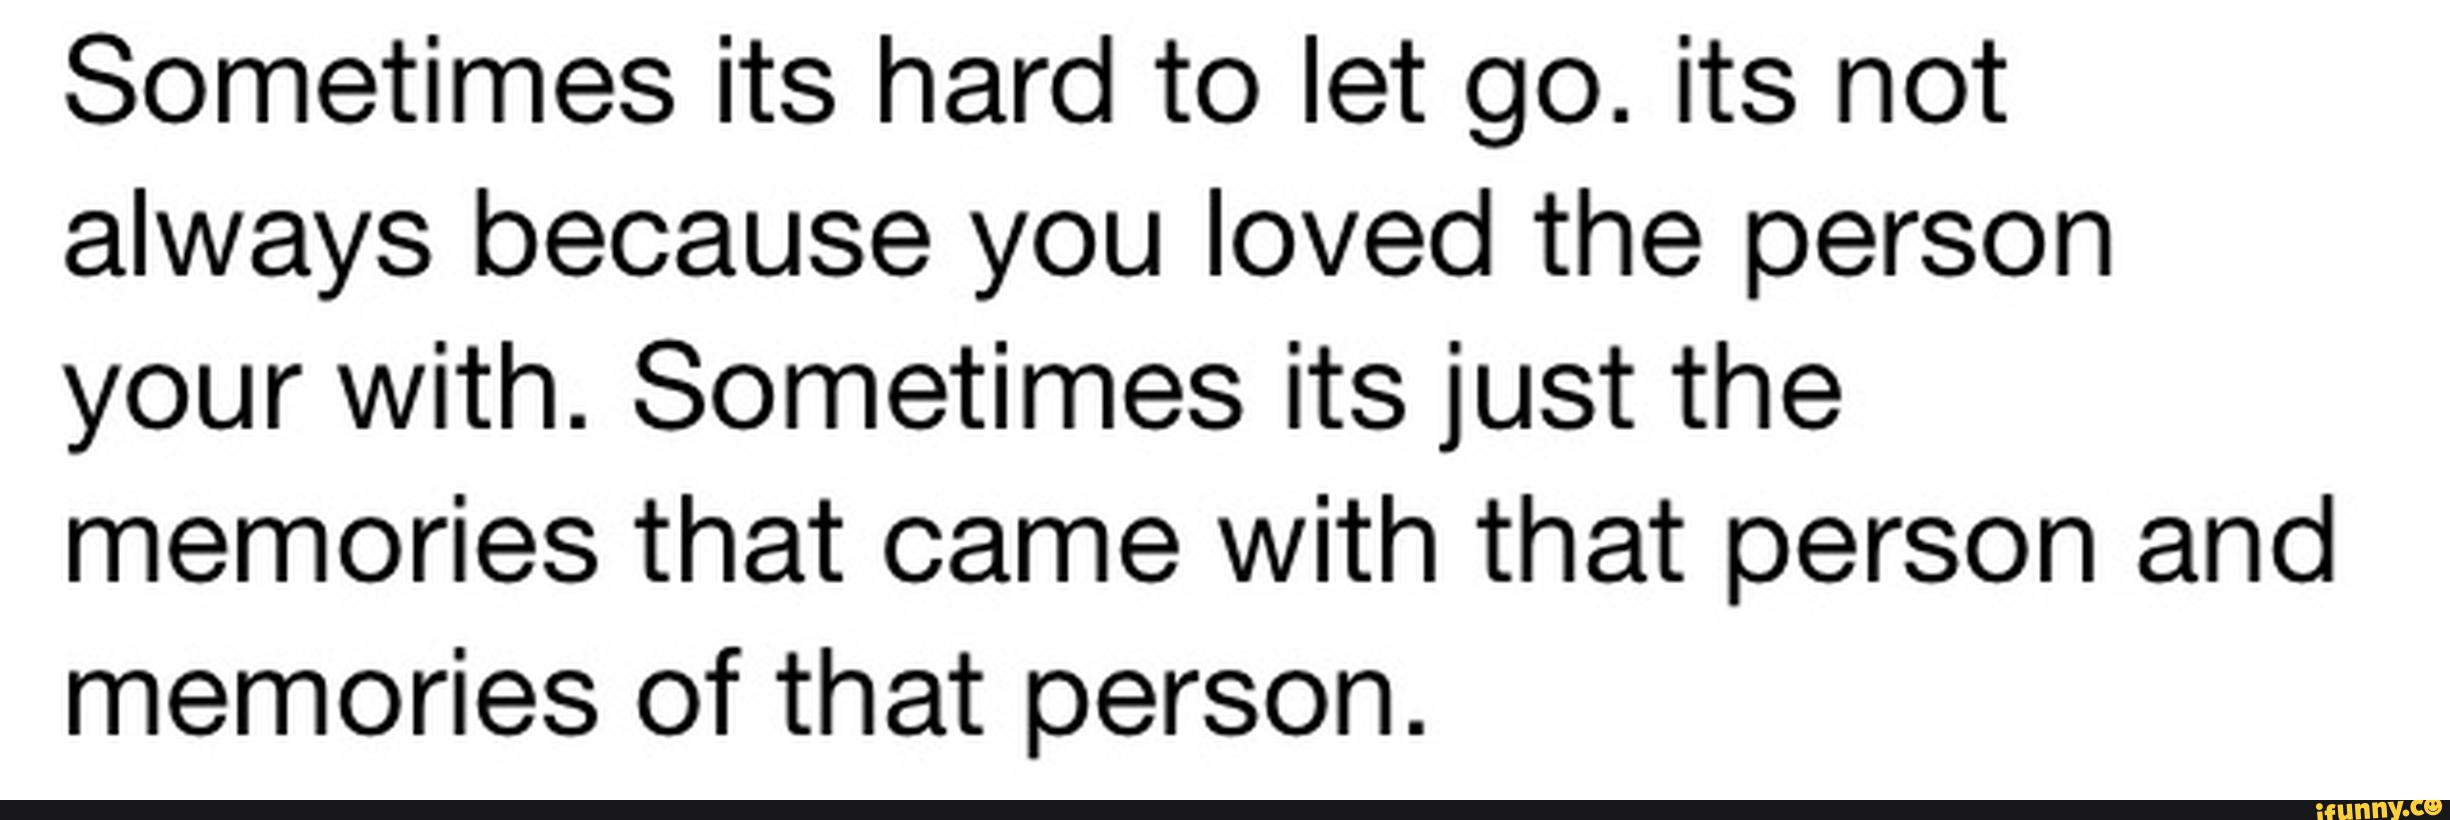 Sometimes Its Hard To Let Go Its Not Always Because You